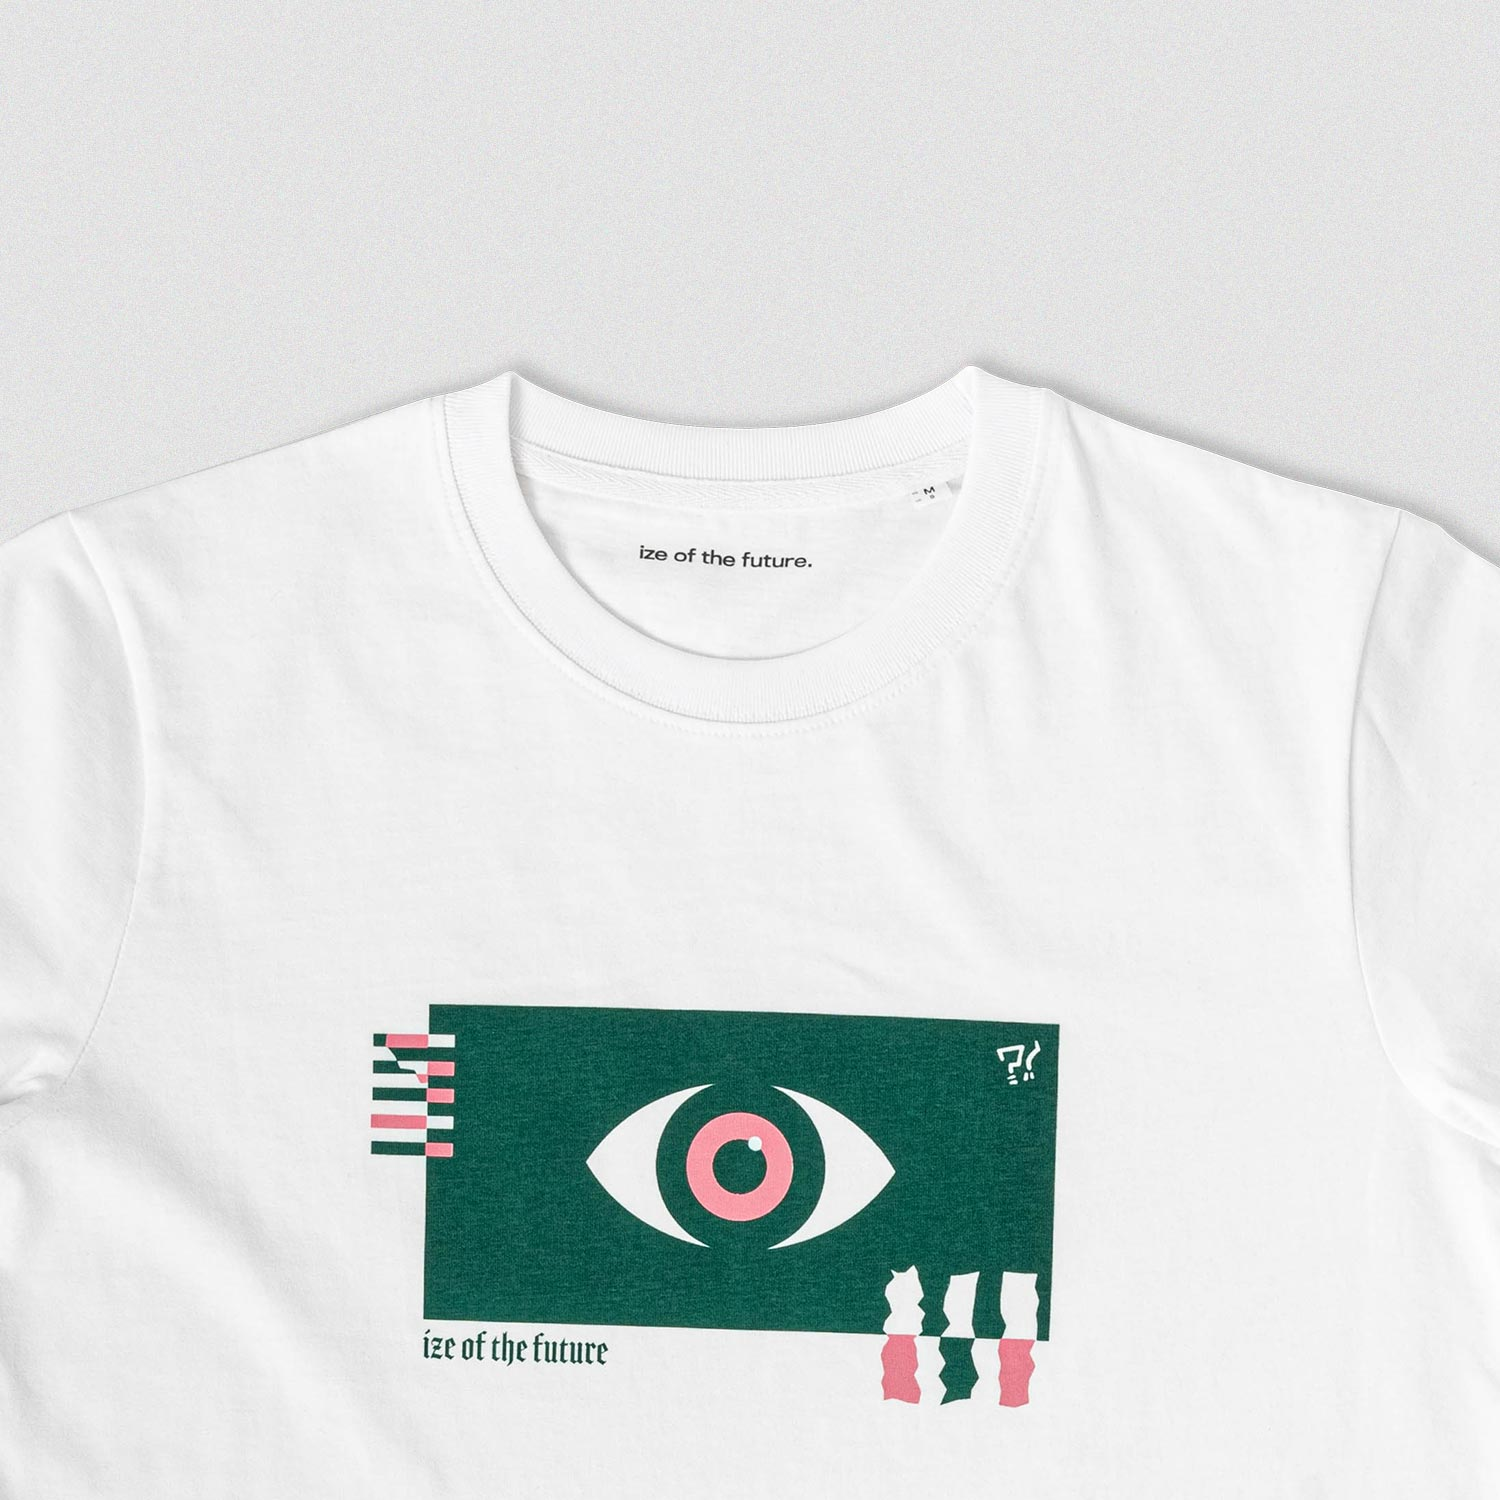 White t-shirt with green and pink graphic, zoomed in